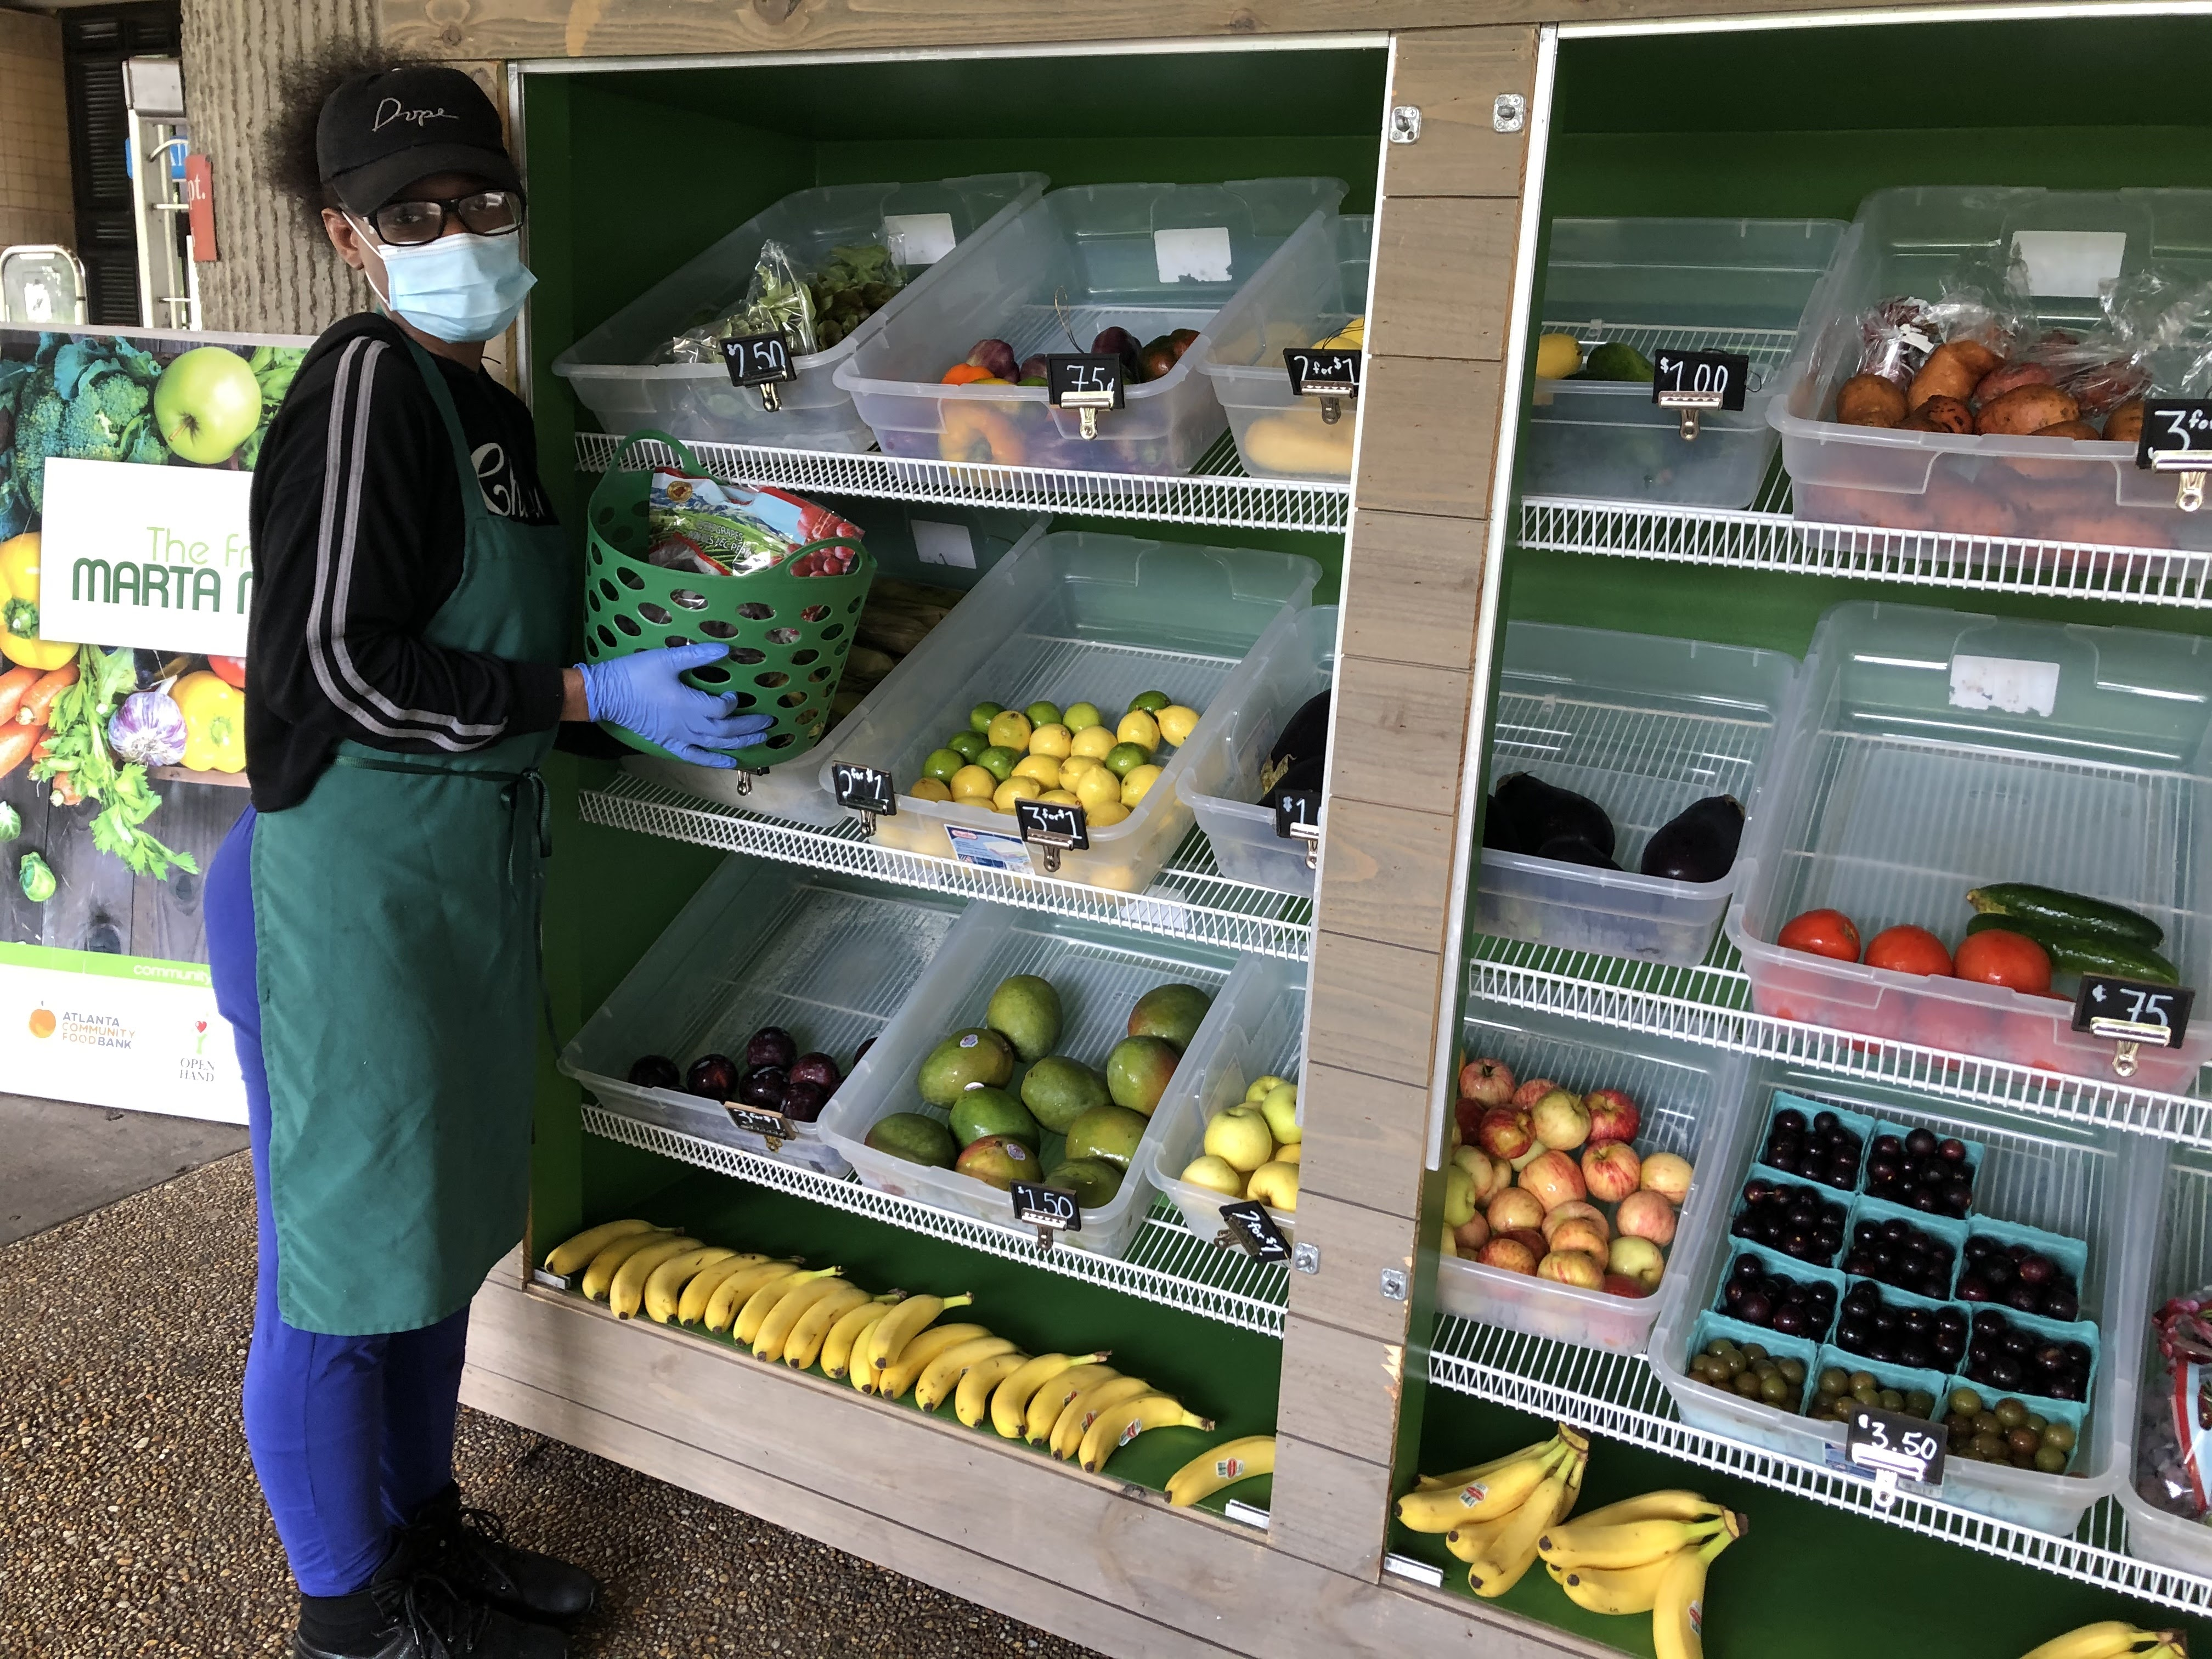 A woman in eye glasses wearing a face mask, blue rubber gloves, a black sweatshirt, jeans, and a green apron tends to the farm stand at an Atlanta MARTA rail station